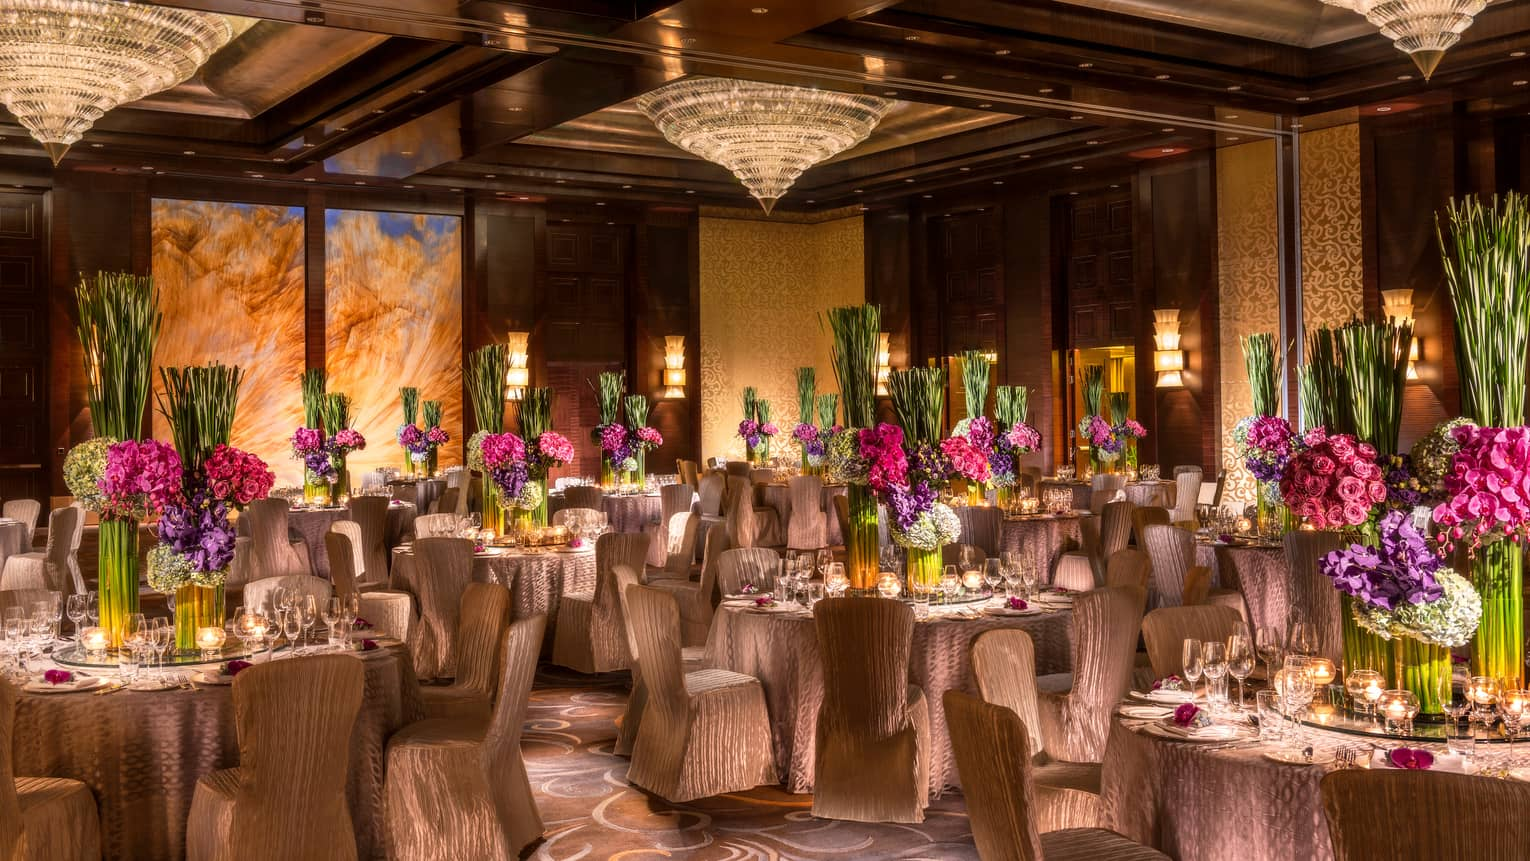 Imperial Ballroom wedding reception with fabric-covered chairs, floral centrepieces, crystal chandeliers